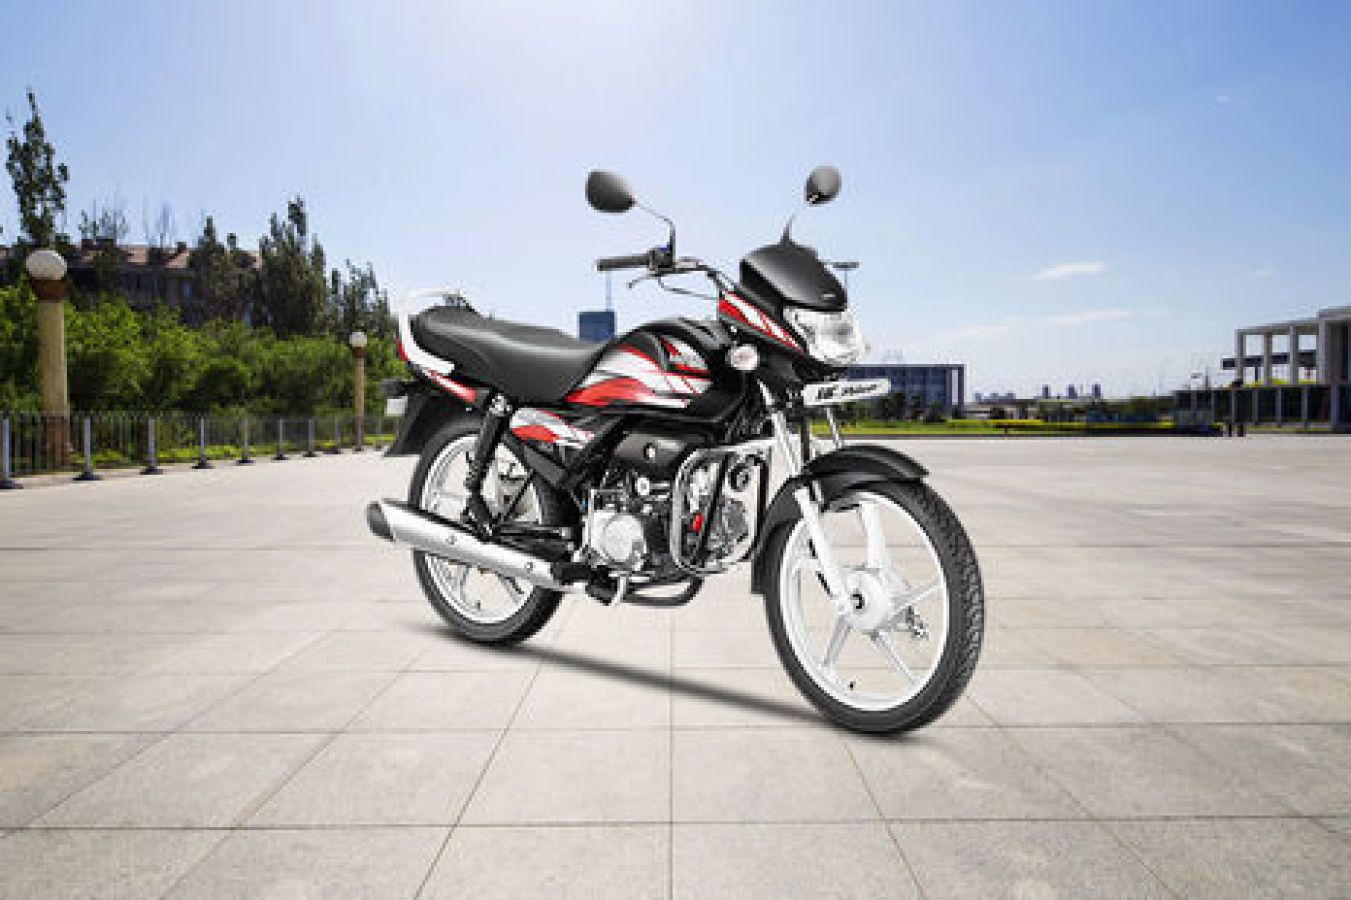 How Different Is Hero Hf Deluxe From Bajaj Ct 100 Know Comparison News Track Live Newstrack English 1